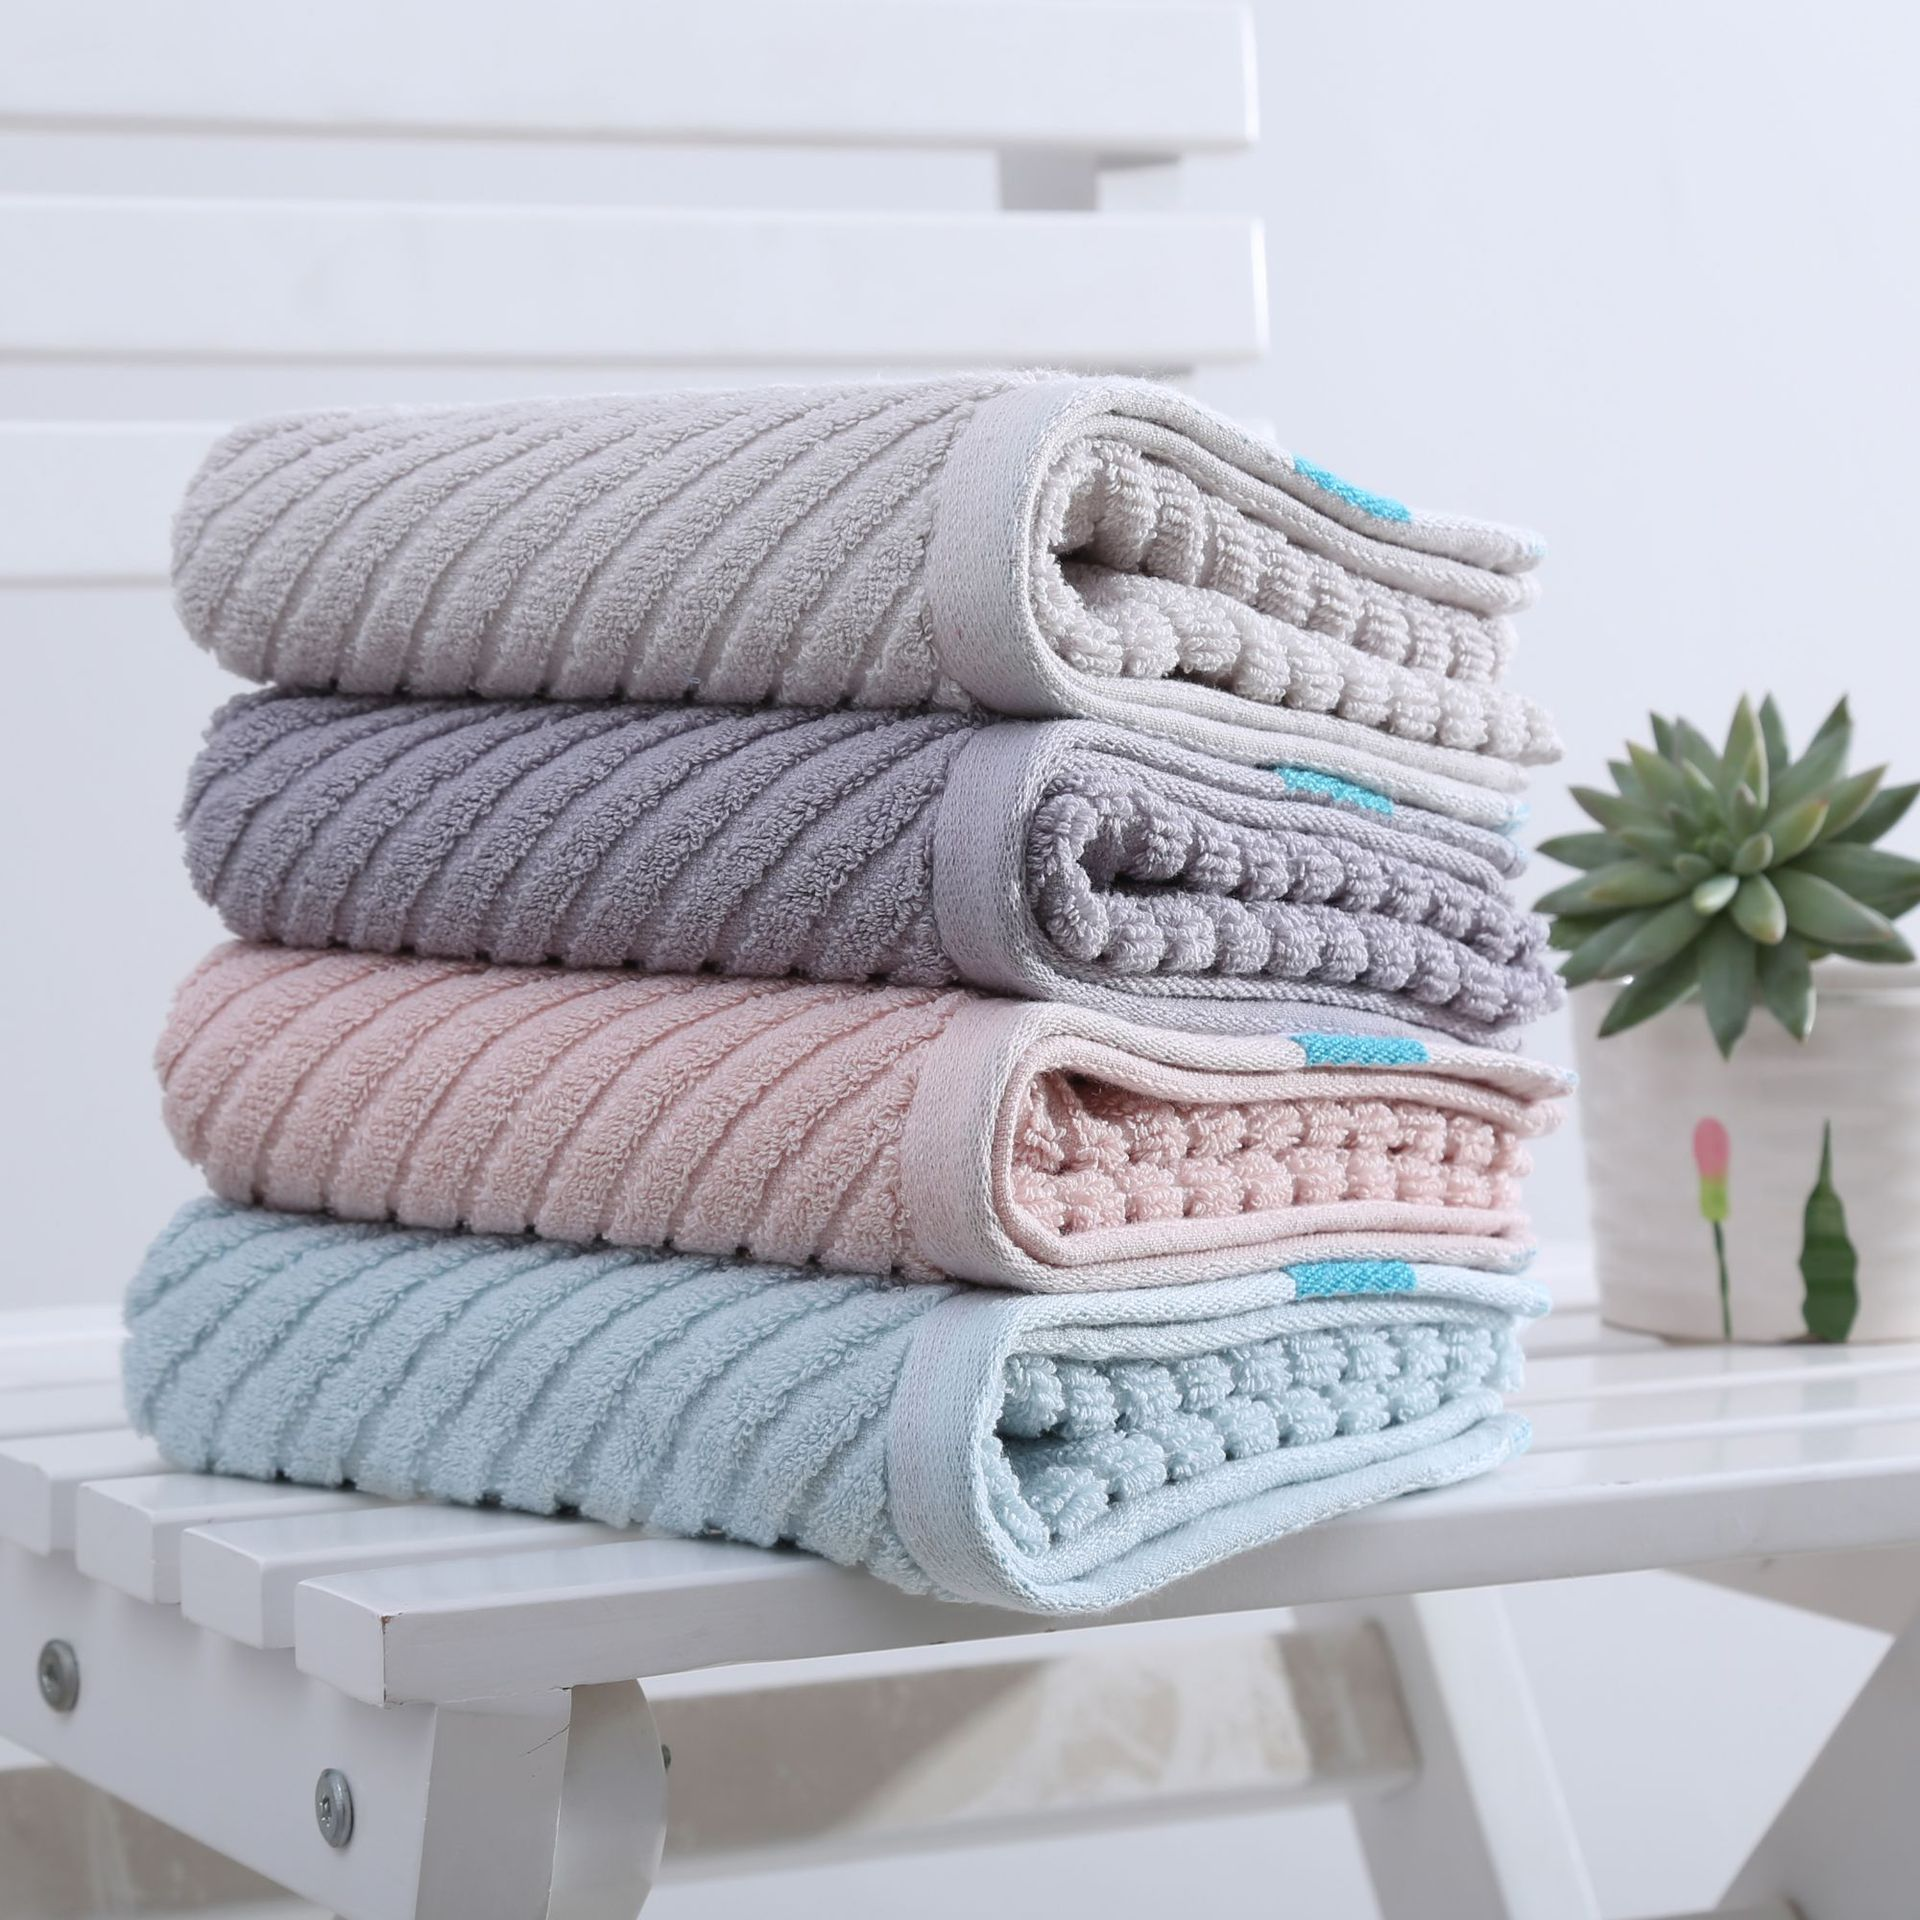 Adult household cotton face towel, plain face towel does not lose hair and absorb water